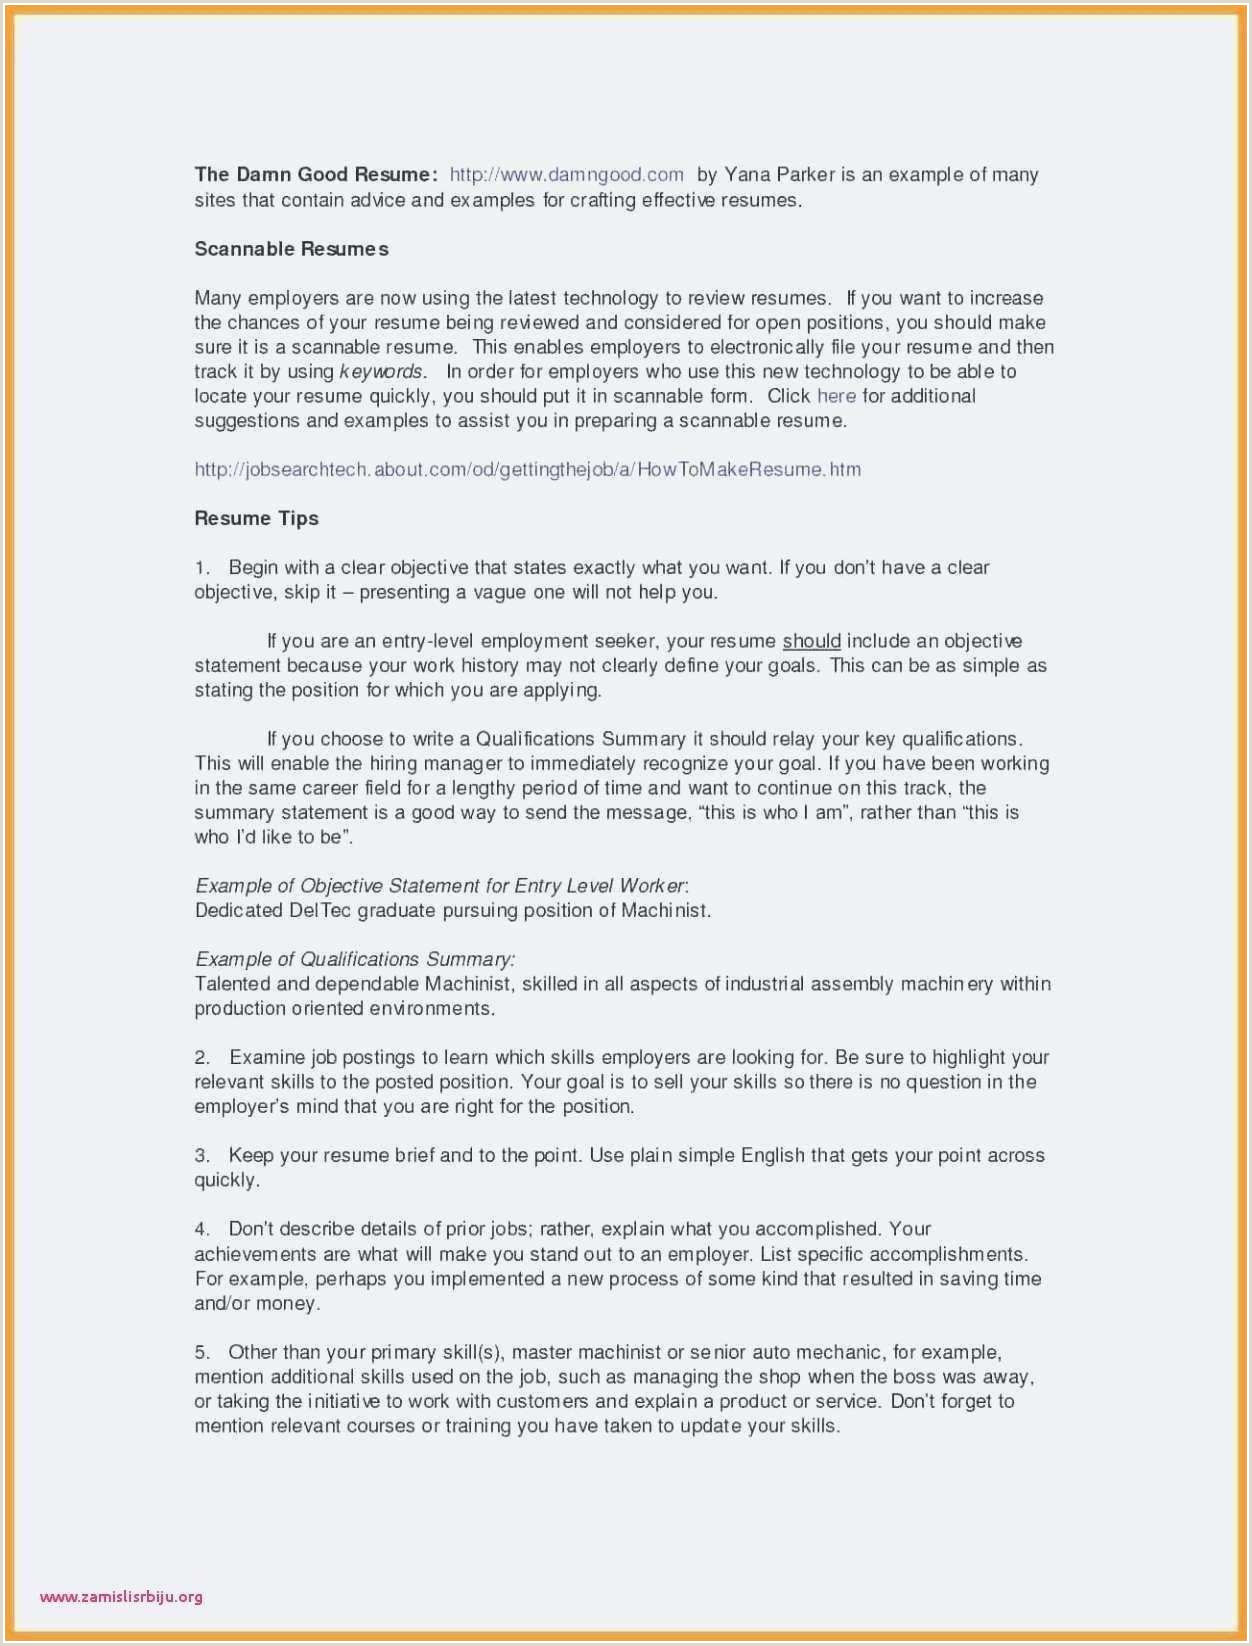 Resume format for On Job Training Cv format Paysage De Base Cv format Example Examples Us